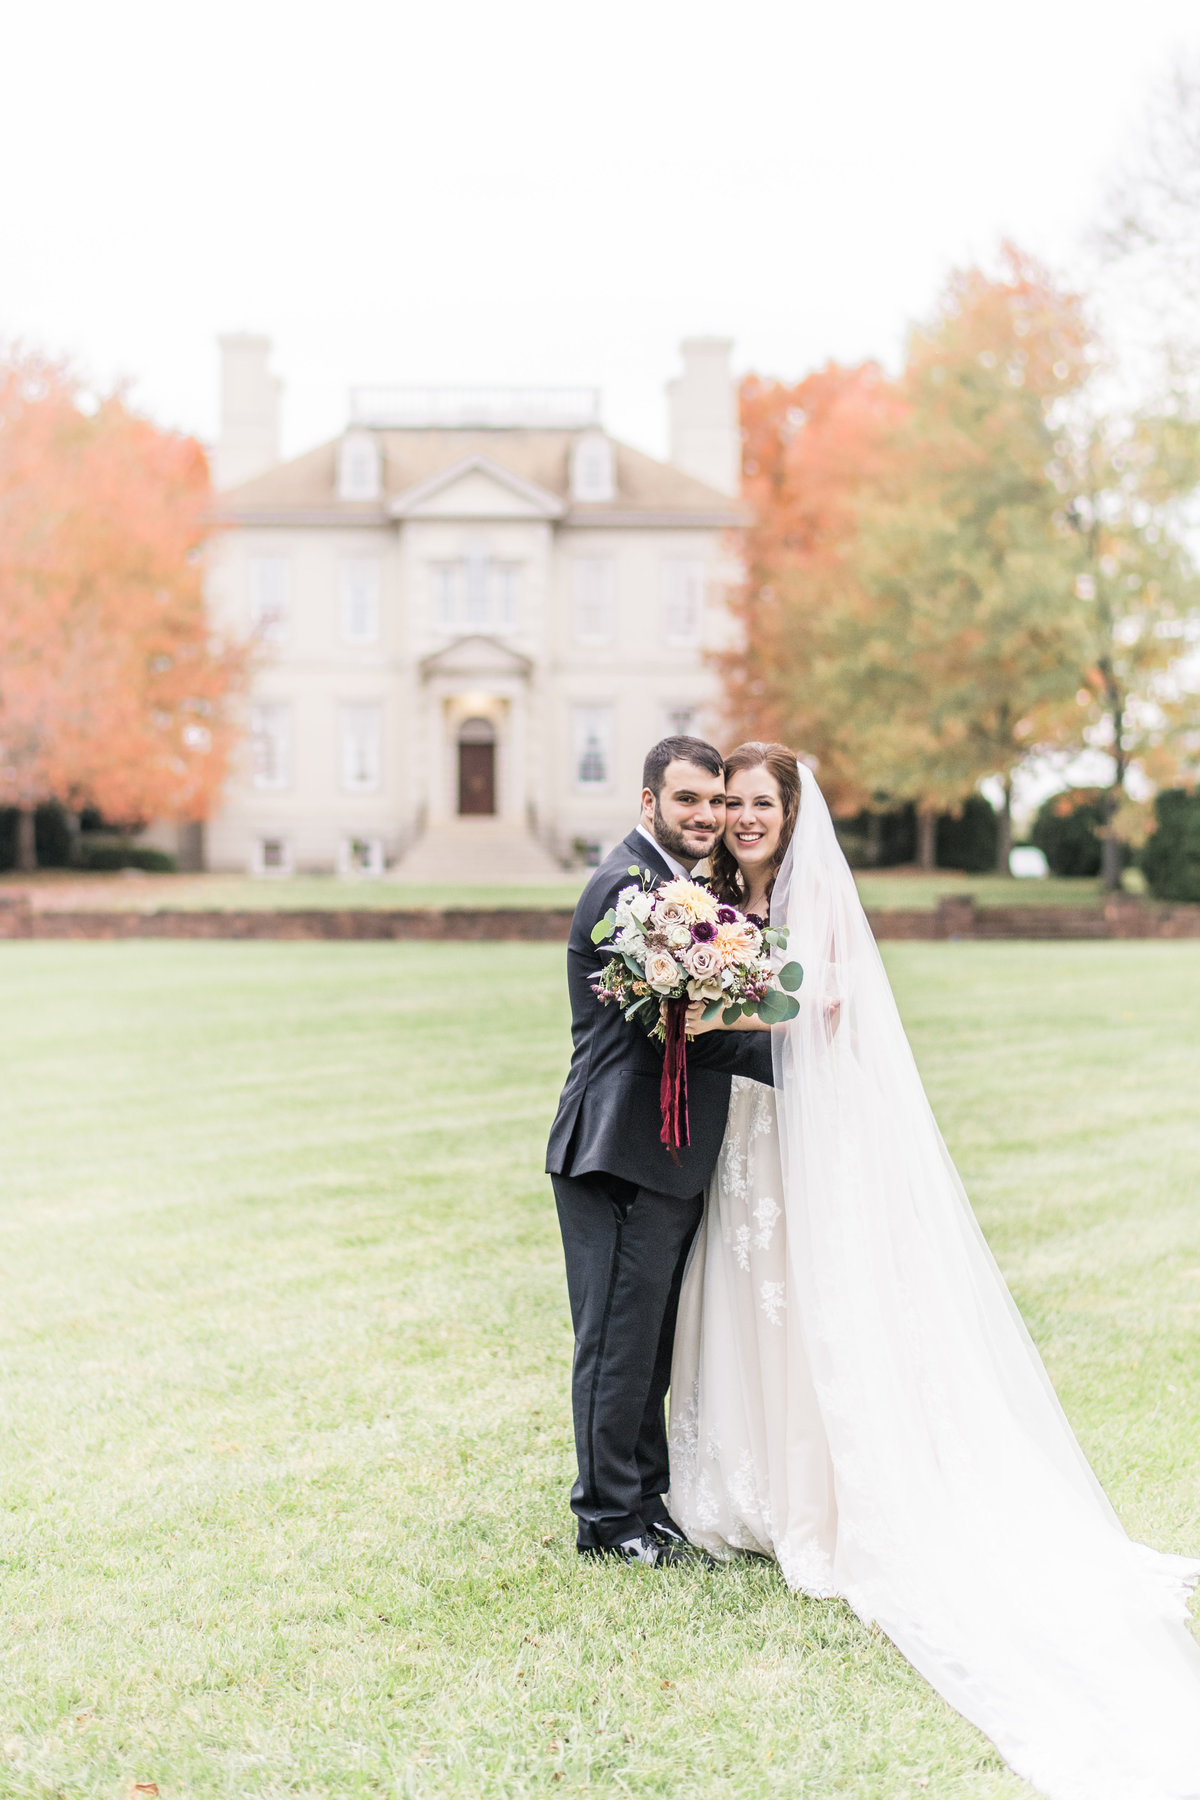 6-anthony-kathryn-great-marsh-estate-bealeton-virginia-wedding-photographer-23